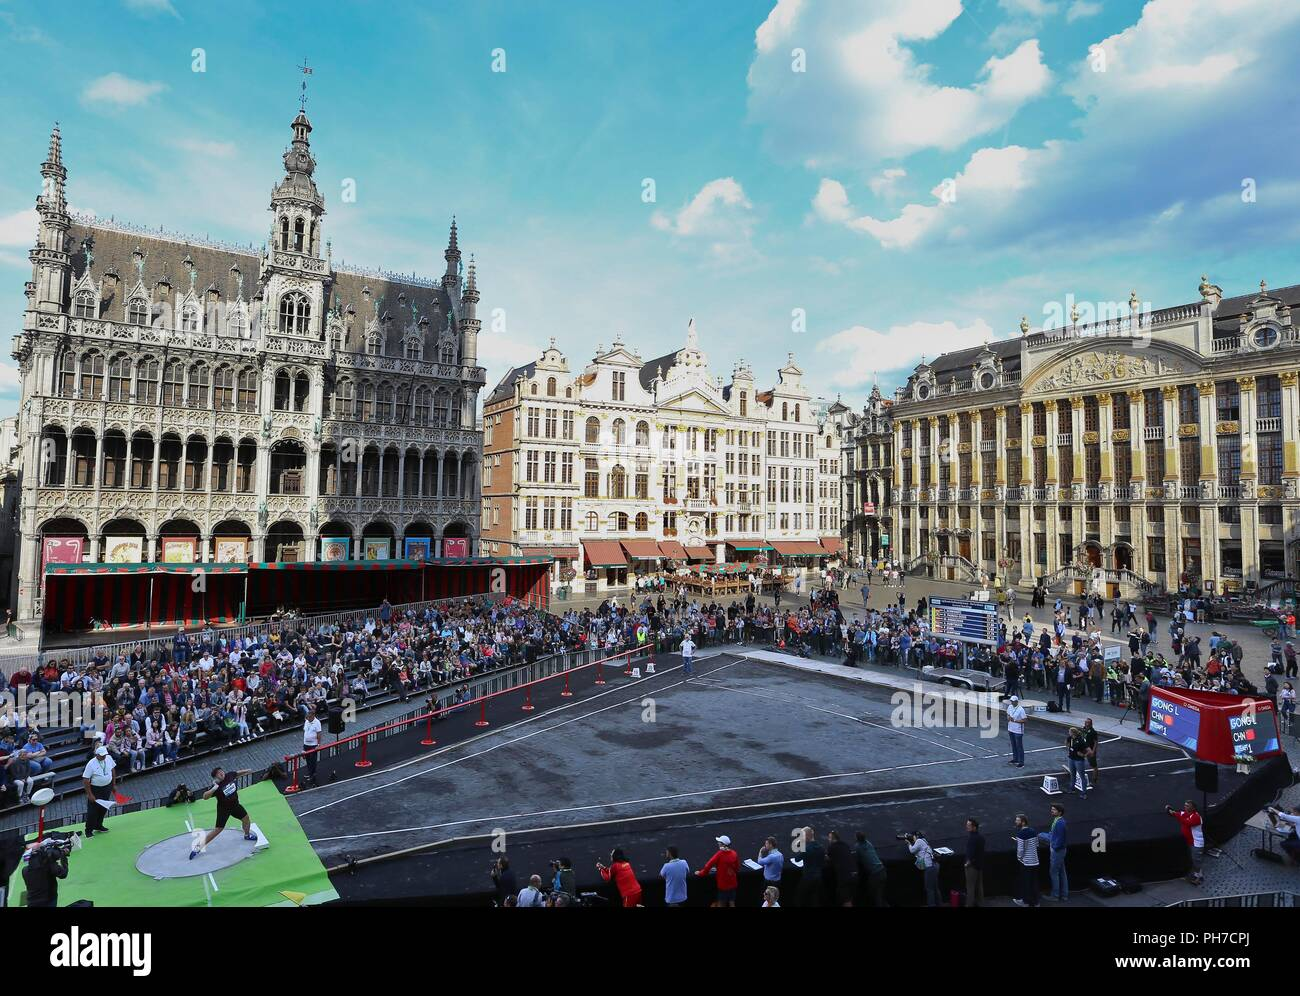 Brussels. 30th Aug, 2018. Gong Lijiao of China competes during the women's shot put event at IAAF Diamond League athletics meeting on the 'Grand Place - Grote Markt' square in the city centre of Brussels, Belgium on Aug. 30, 2018. Credit: Ye Pingfan/Xinhua/Alamy Live News - Stock Image